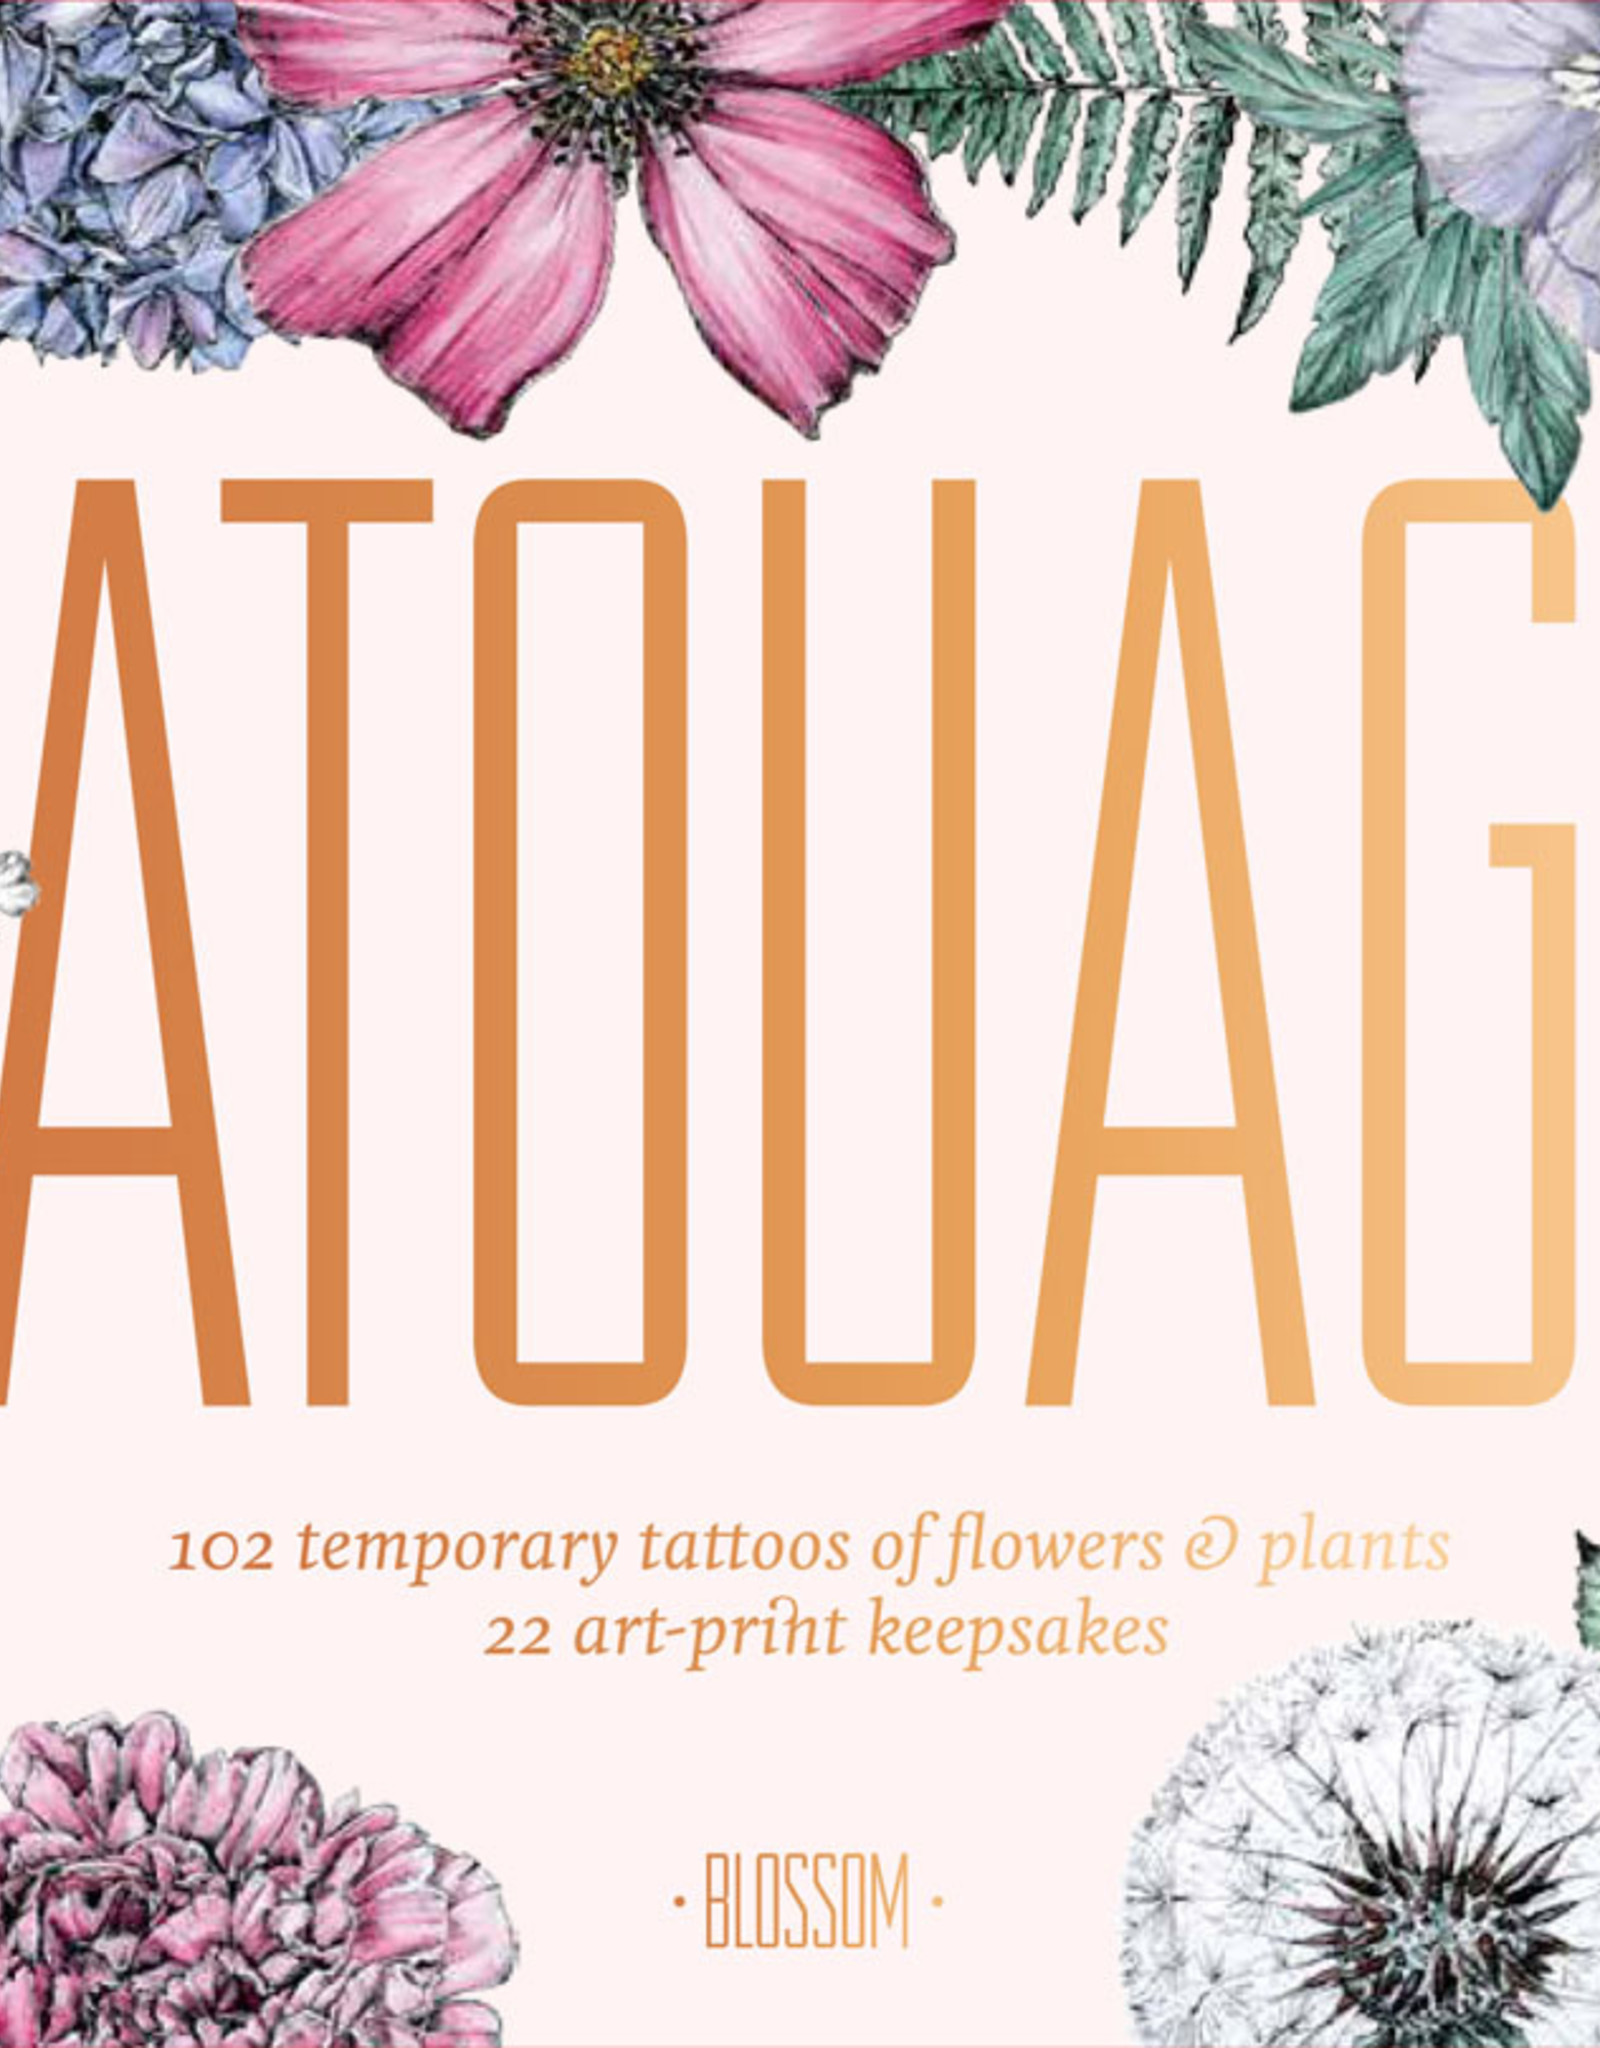 Tatouage: Blossom 102 Temporary Tattoos of Flowers & Plants by Victoria Foster